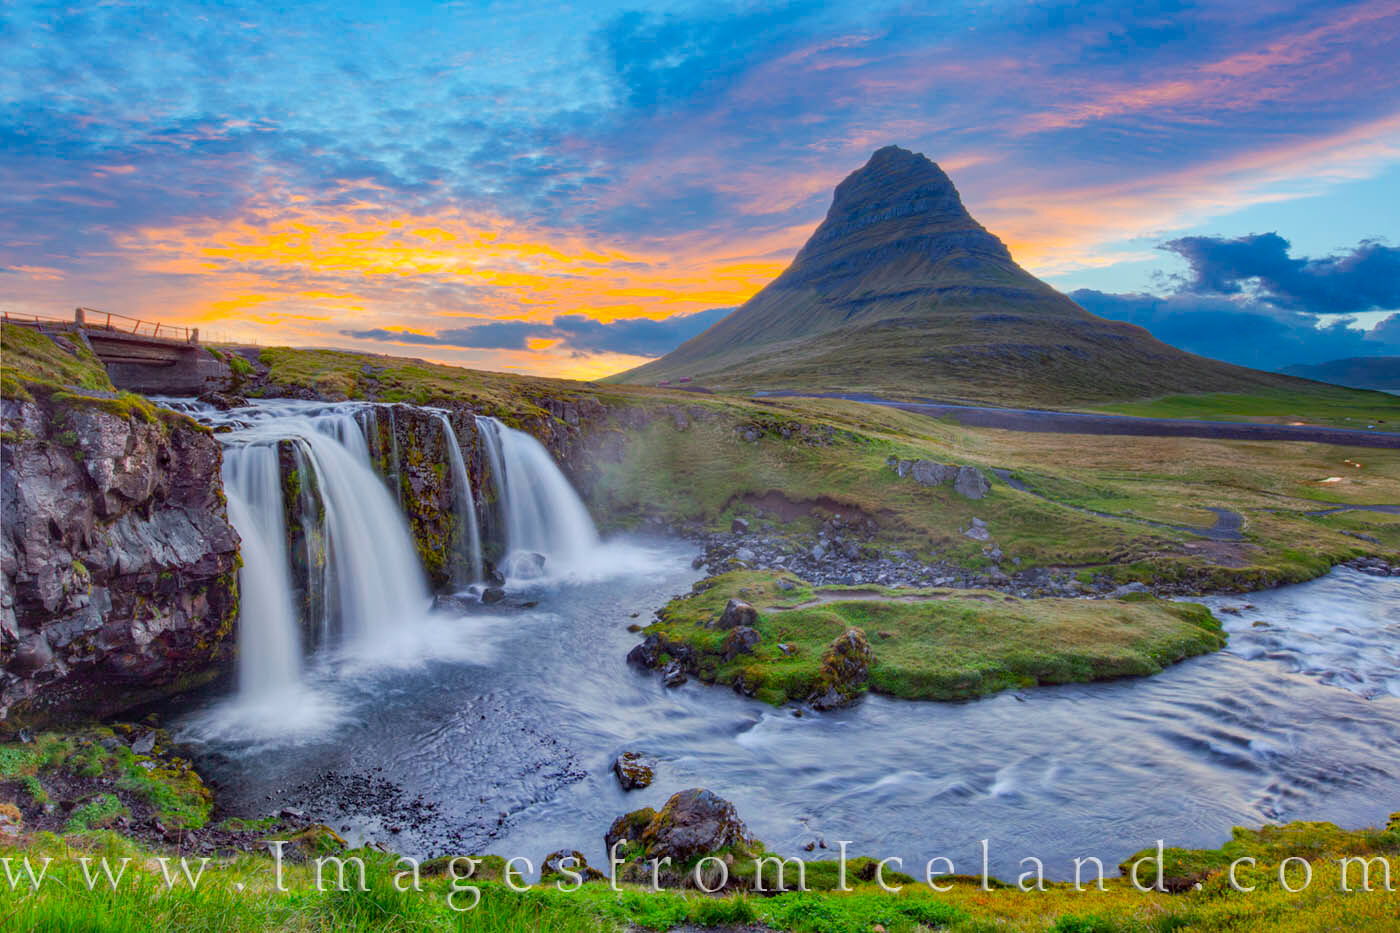 This photograph is one of a series of images showing Kirkjufell Mountain under a beautiful sky just after midnight as the clouds...